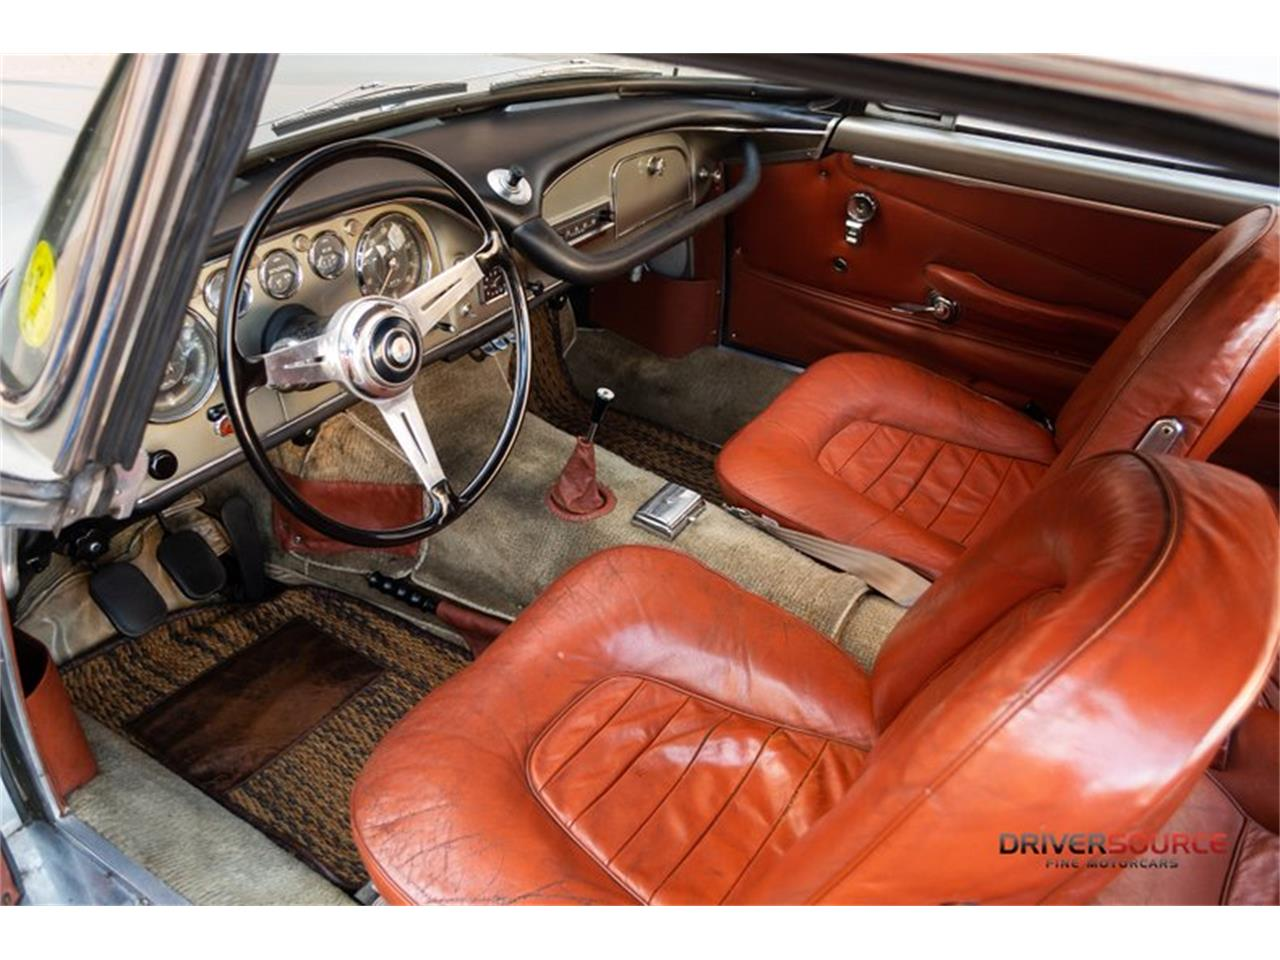 Large Picture of '62 Maserati 3500 located in Houston Texas - $278,500.00 Offered by Driversource - OCR7